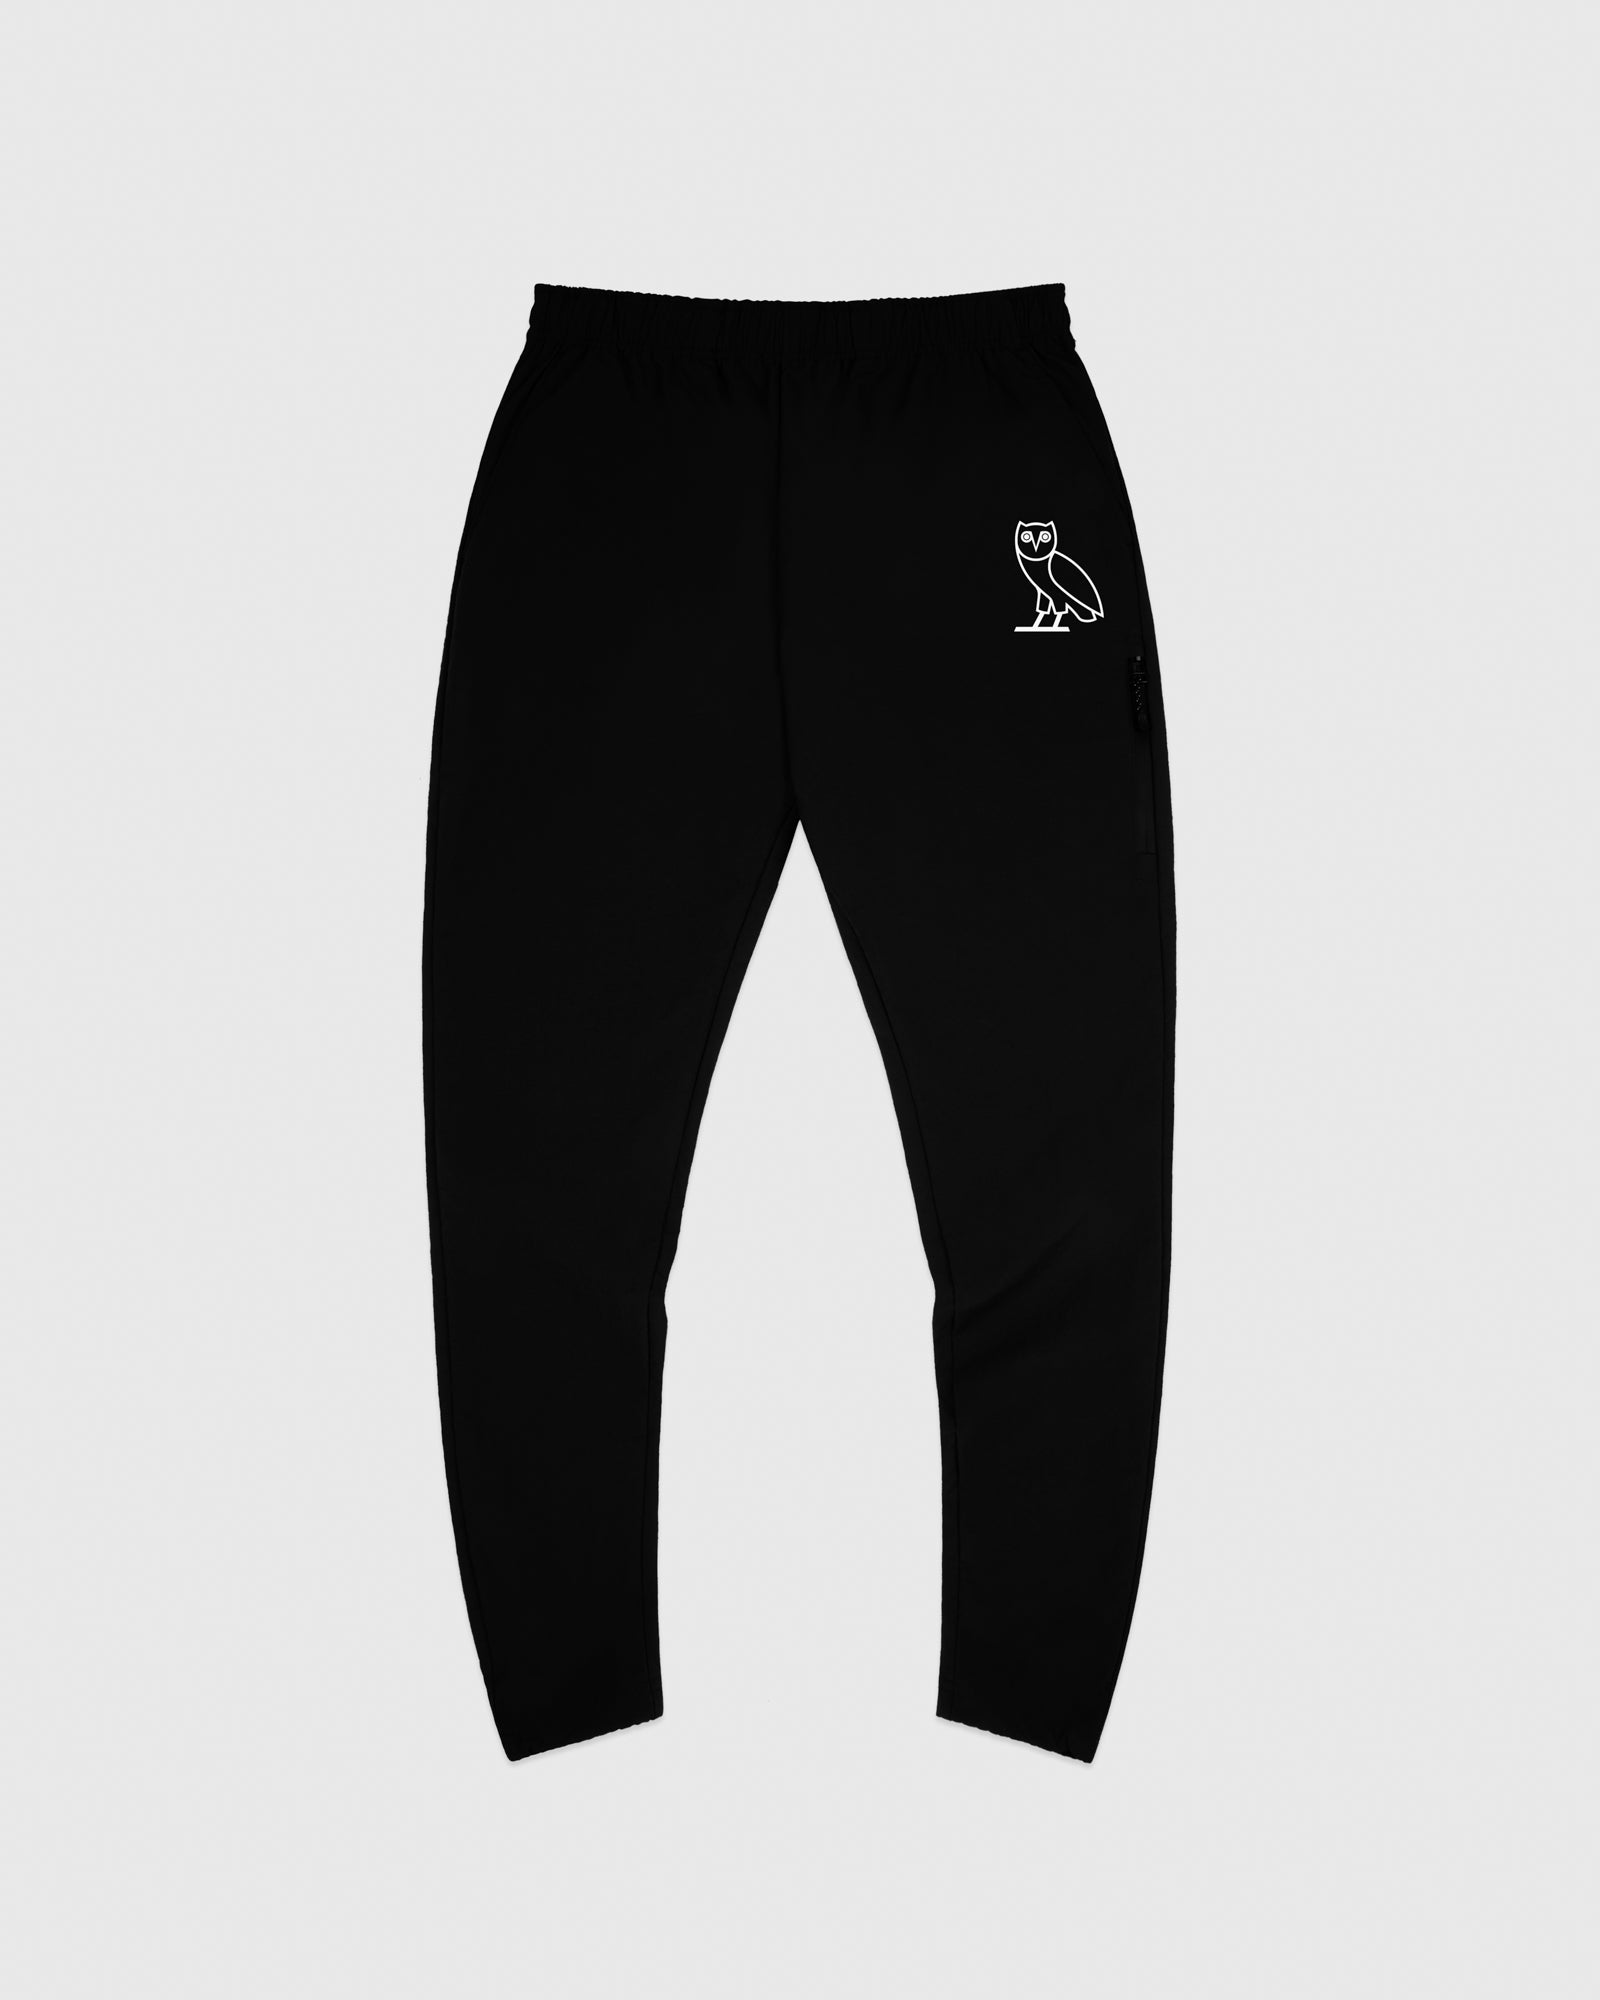 TASLAN ZIP POCKET PANT - BLACK IMAGE #1